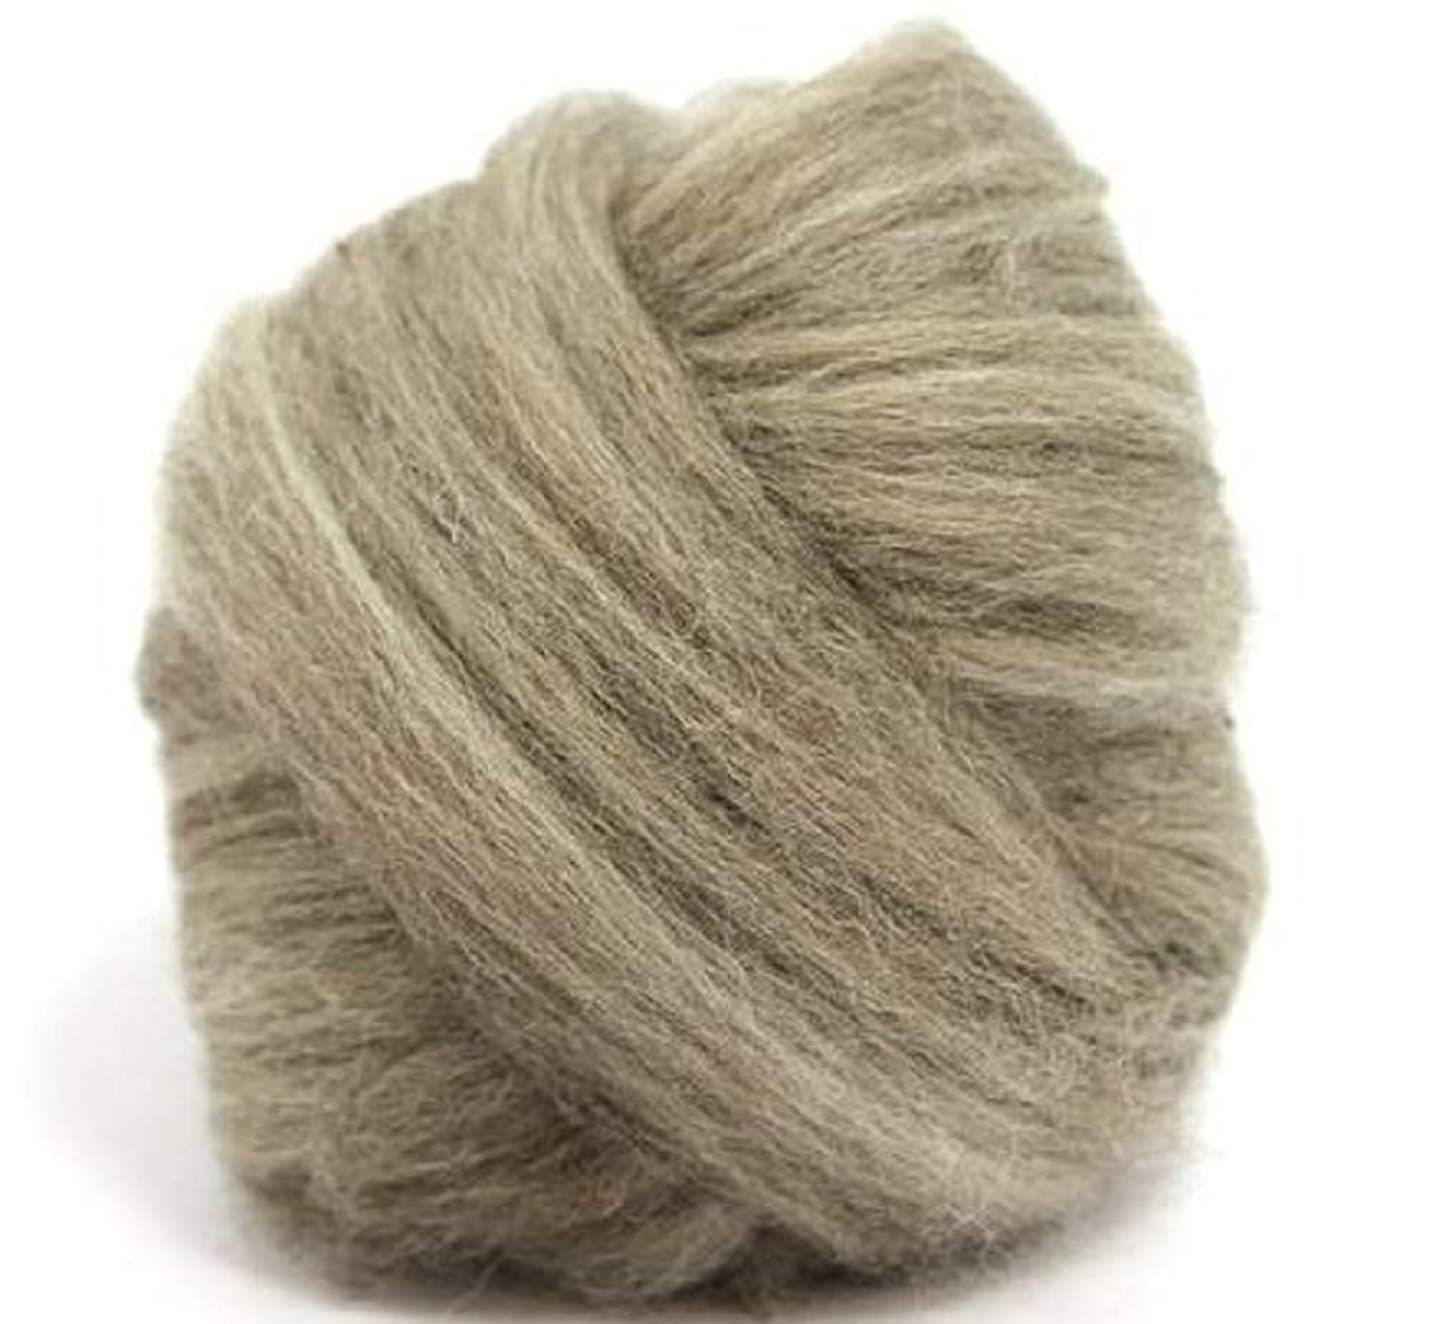 4 oz Paradise Fibers Blue Faced Leicester Roving - Oatmeal (Gray) - Perfect for Woolen Yarn & Needle Felting